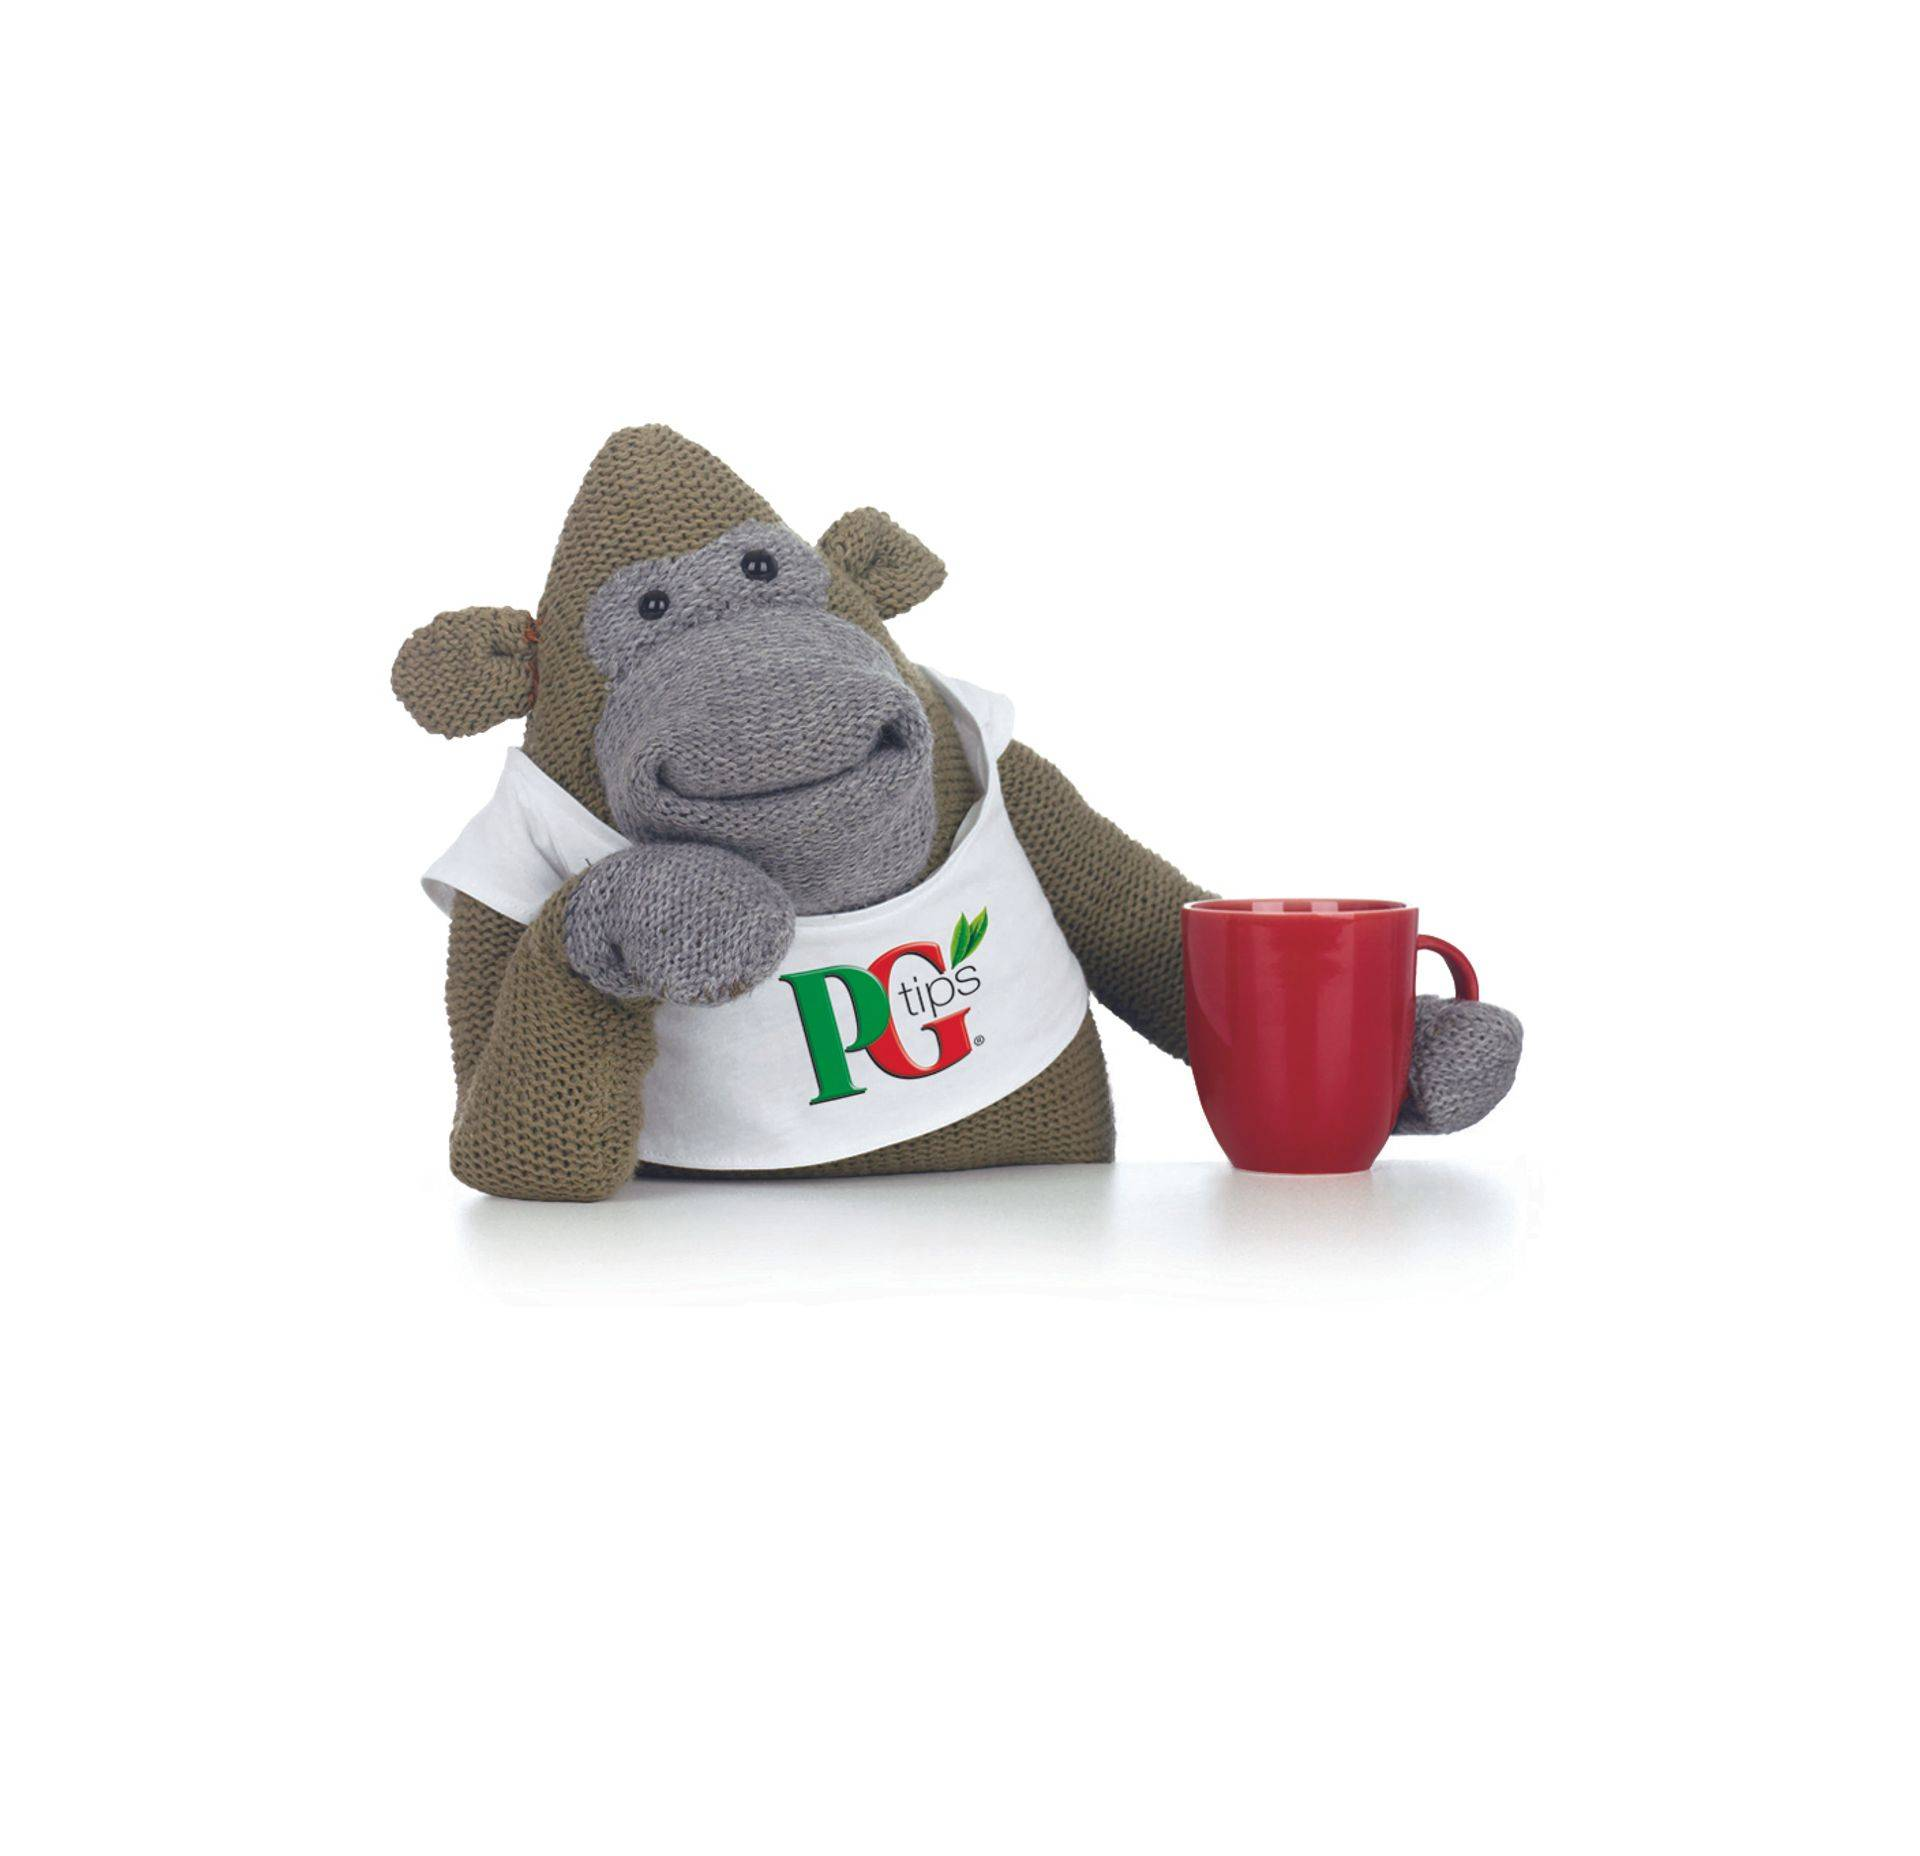 Pg Tips TV advert monkey character